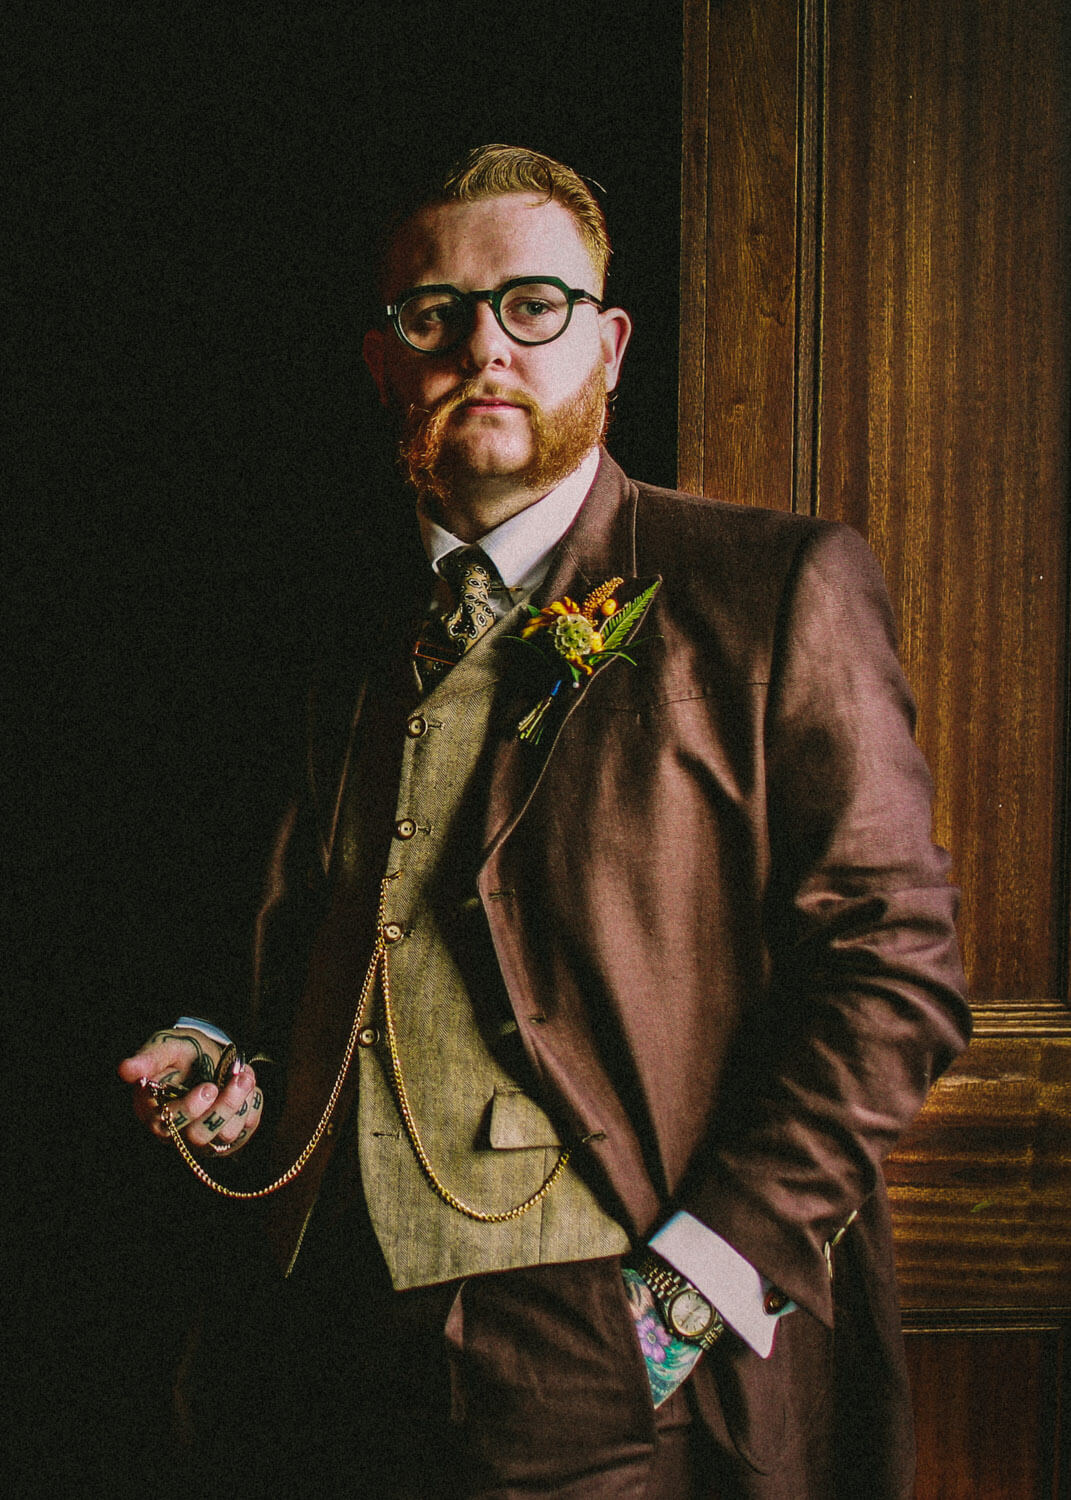 Portrait of vintage groom in window with pocket watch